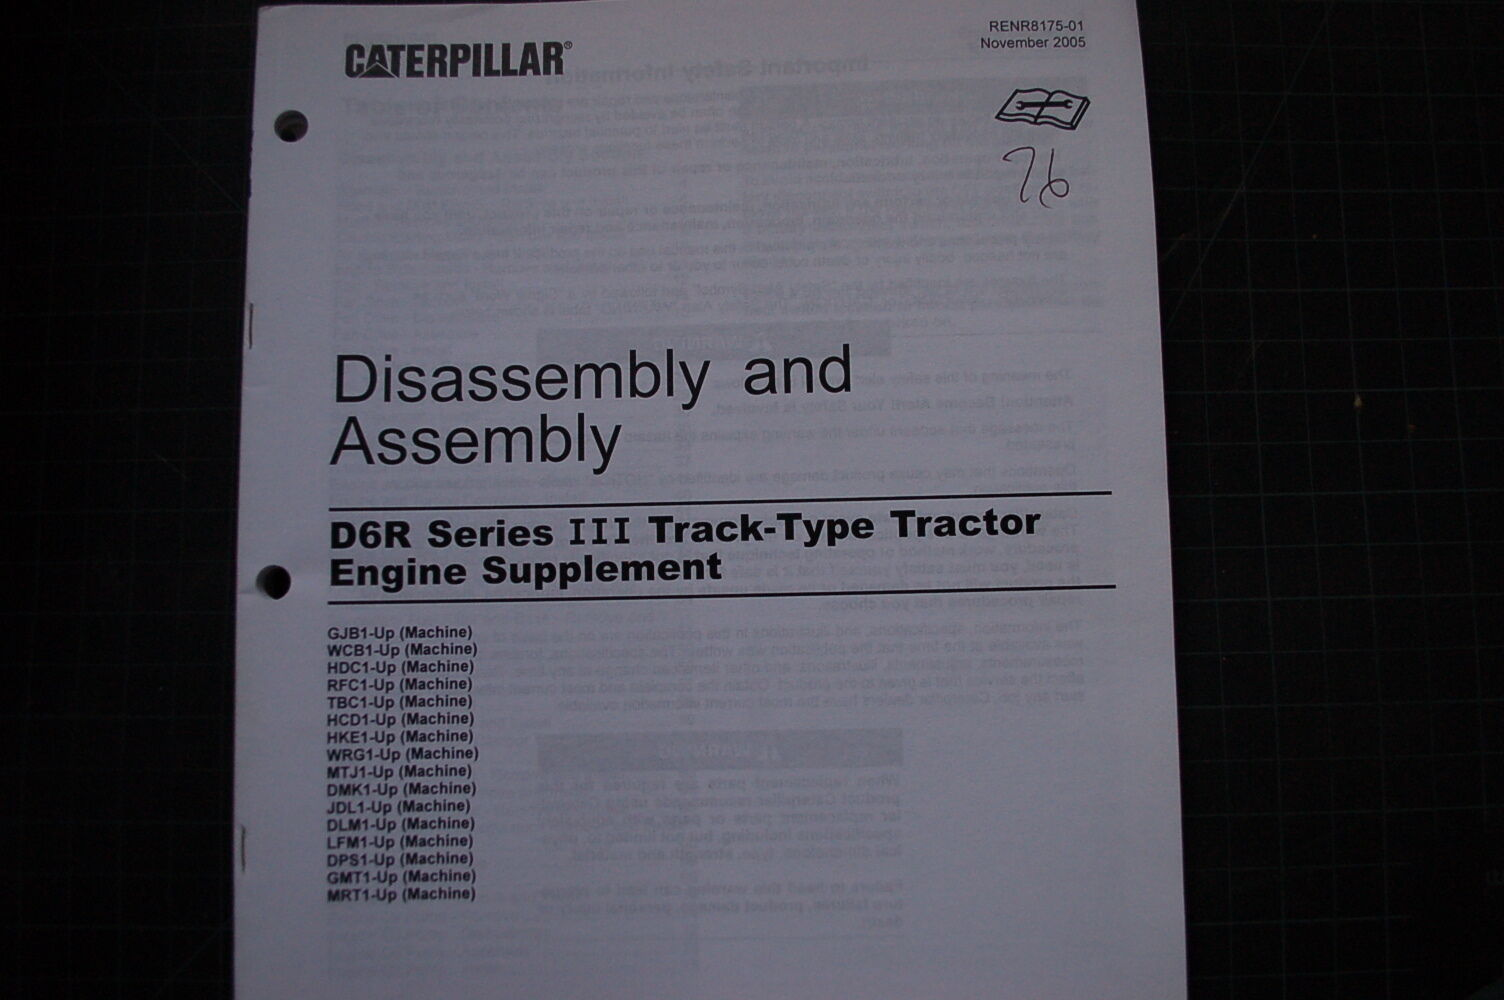 CATERPILLAR D6R Engine Disassembly Assembly Service Manual SUPPLEMENT  repair OEM 1 of 4Only 1 available CATERPILLAR D6R ...